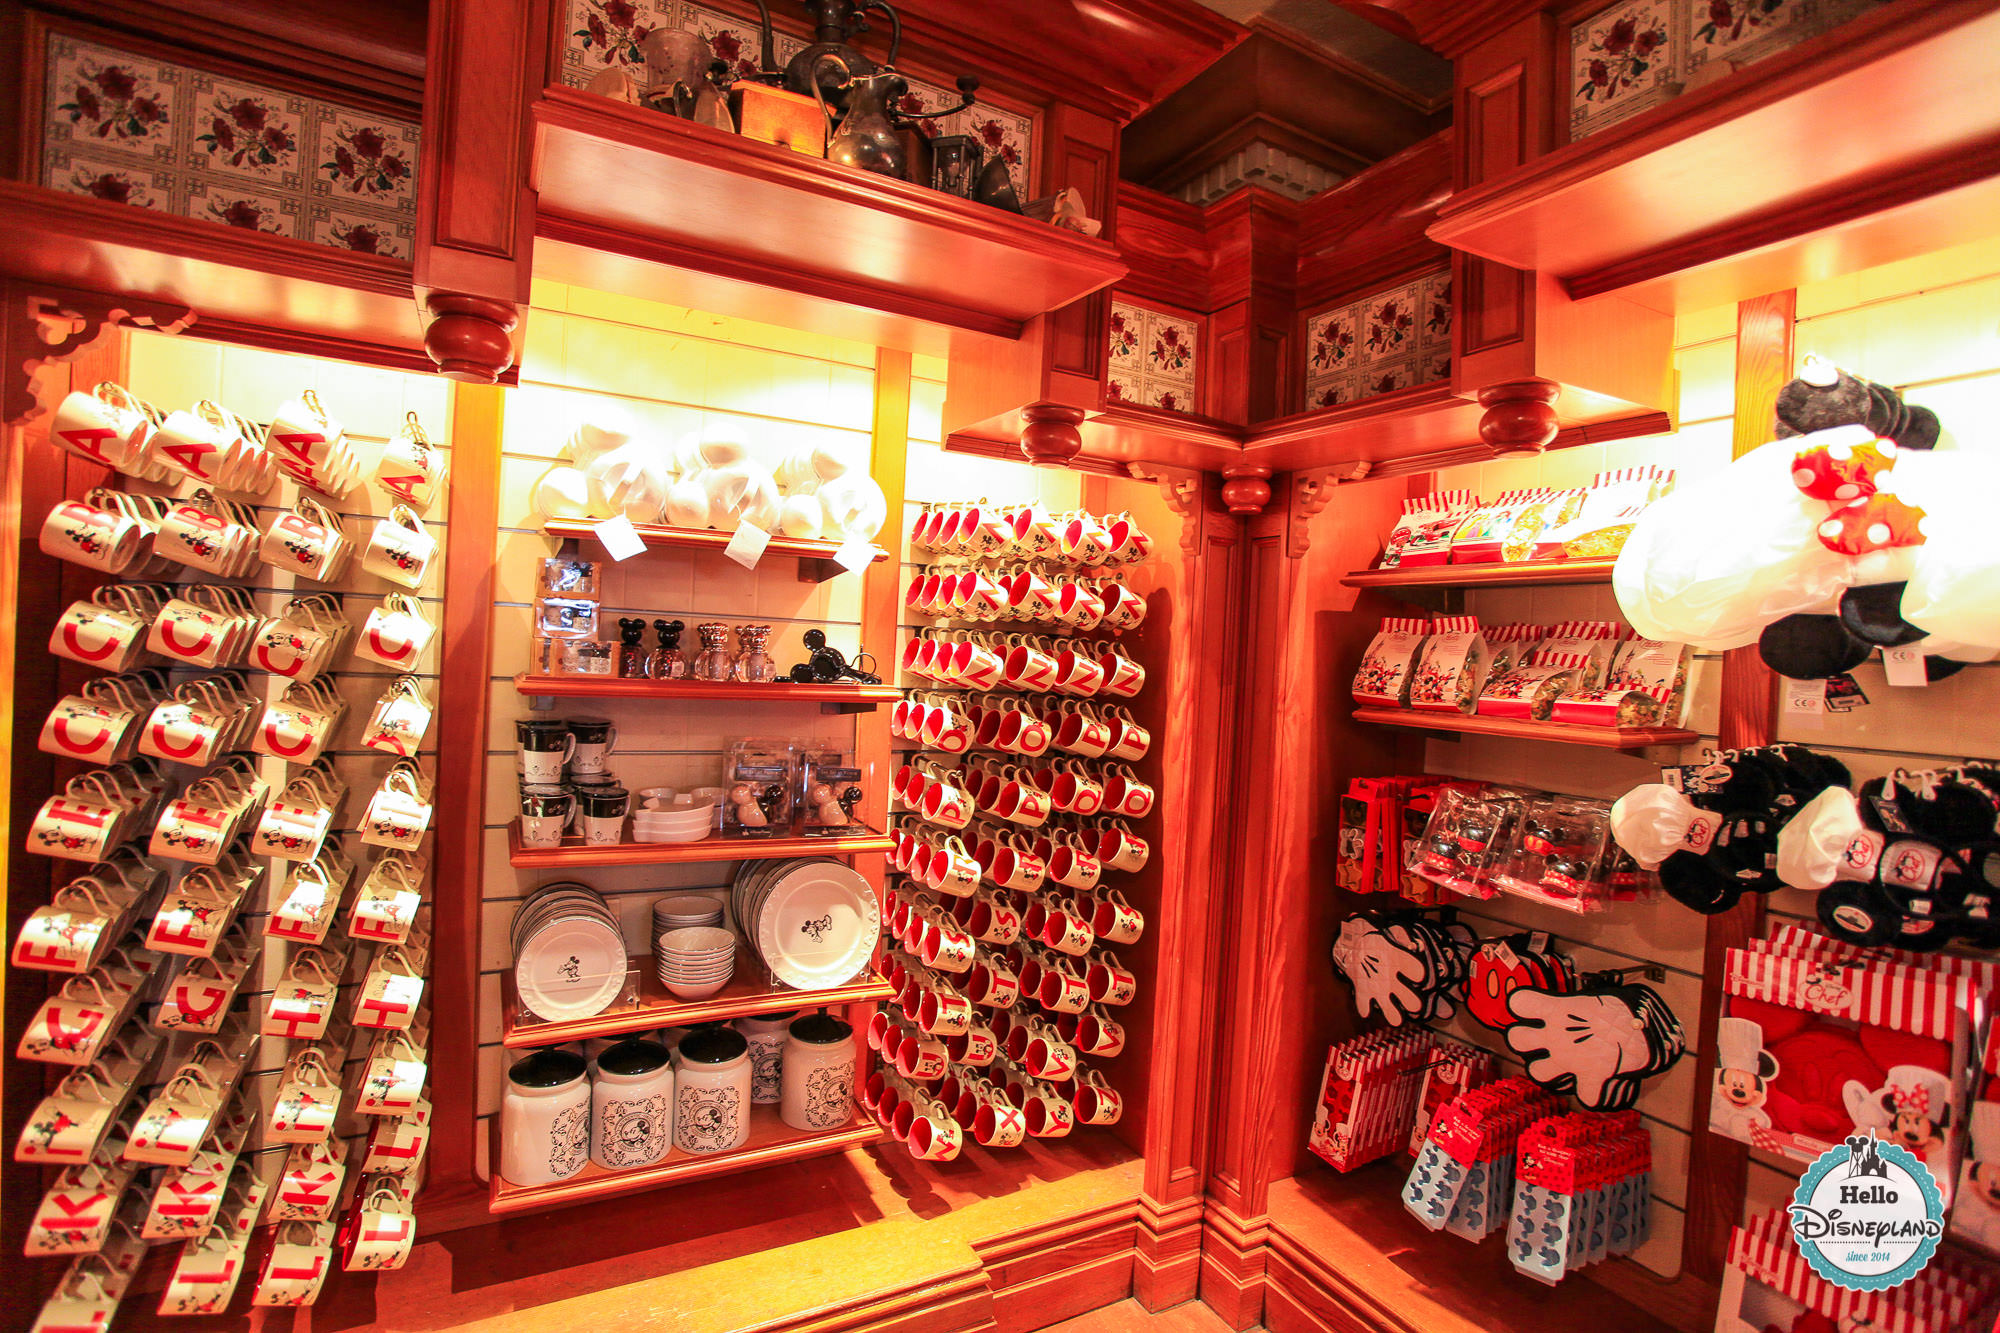 hello disneyland le blog n 1 sur disneyland paris les souvenirs de disneyland paris utiles. Black Bedroom Furniture Sets. Home Design Ideas